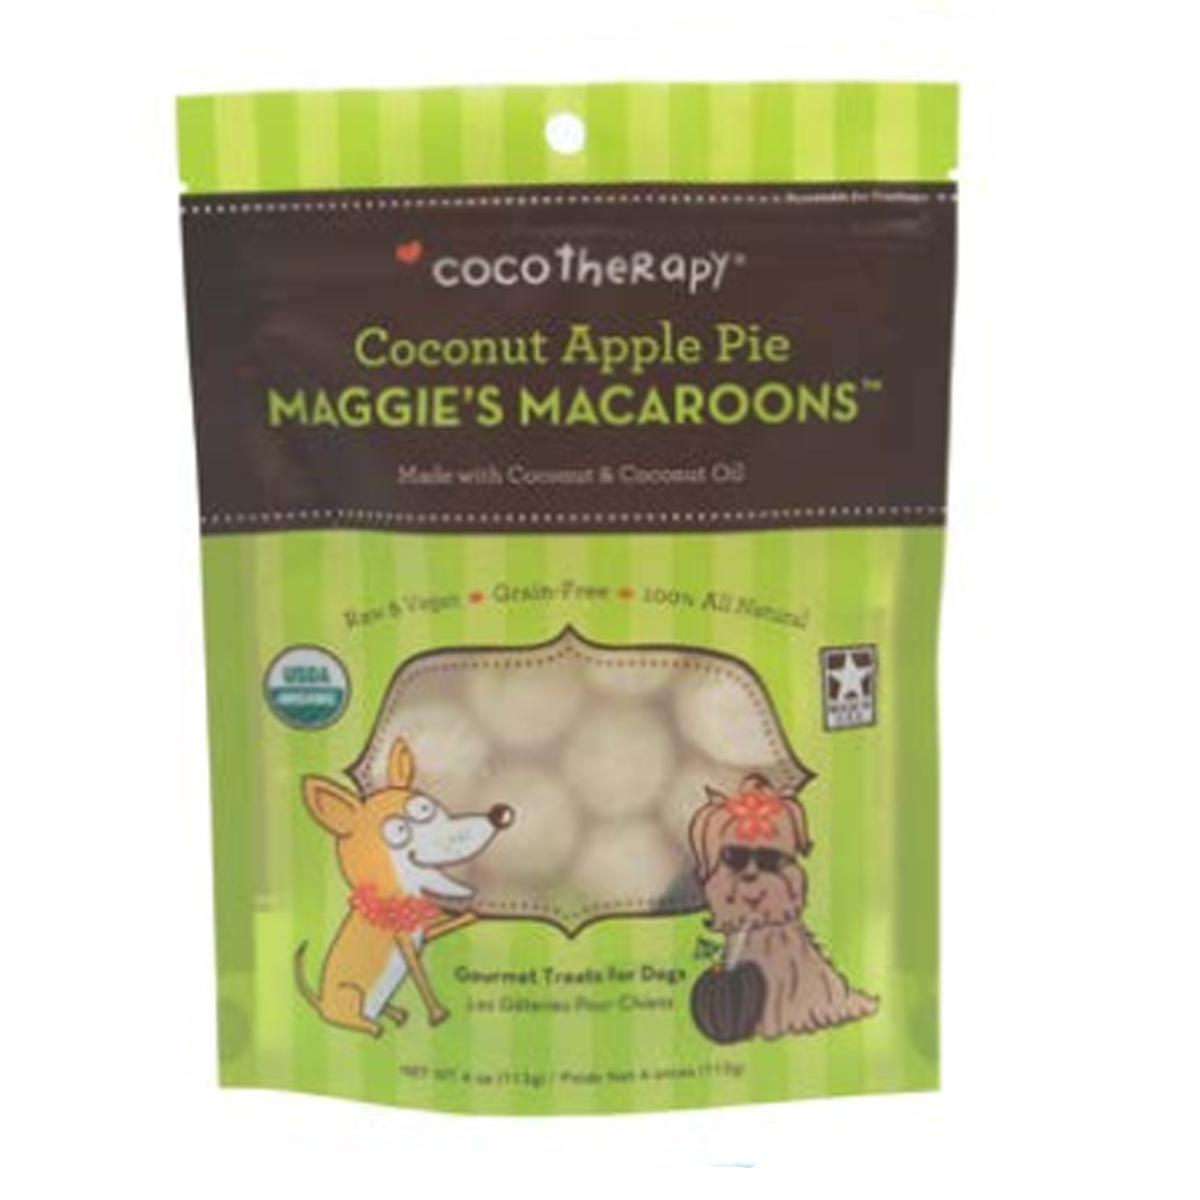 cocotherapy maggie u0026 39 s macaroons pet treat